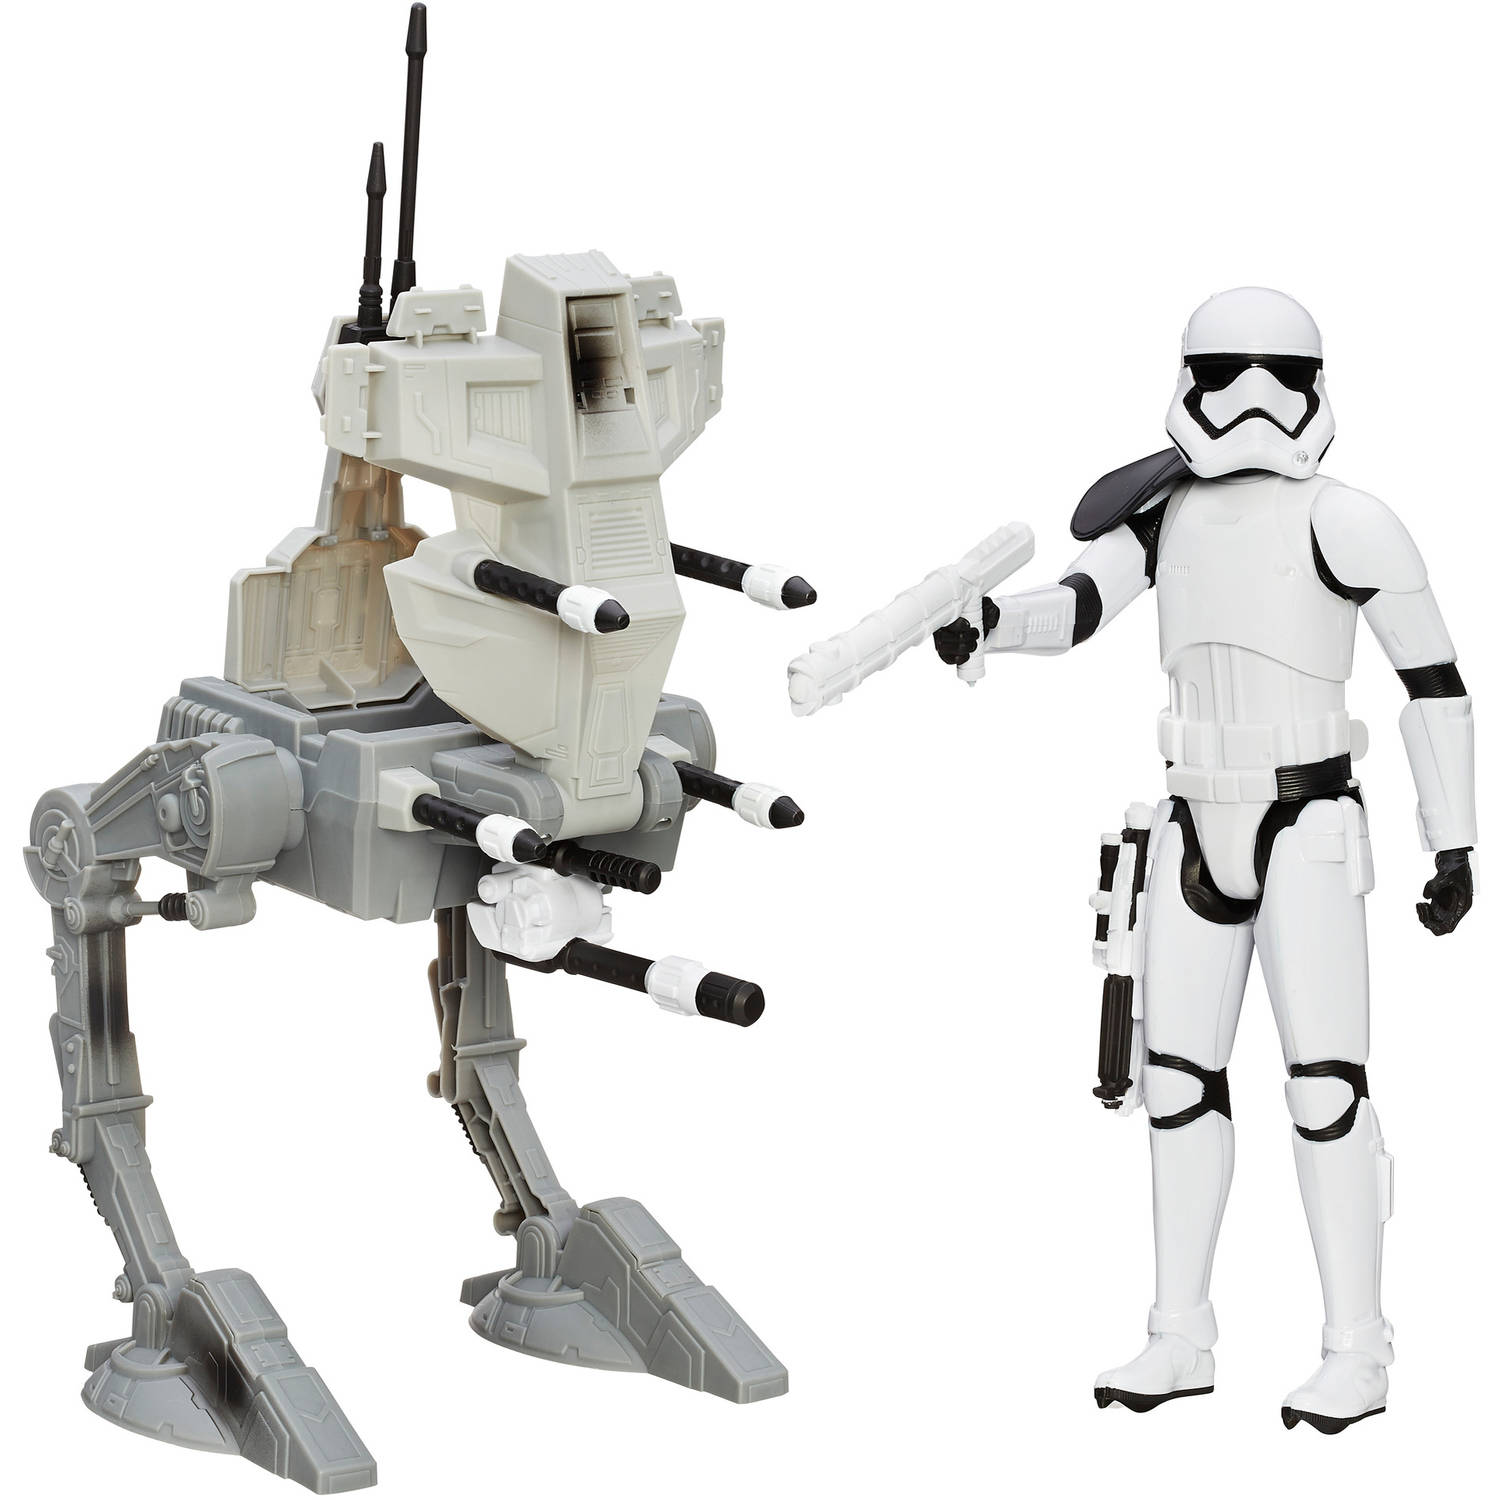 "Star Wars The Force Awakens 12"" Assault Walker"